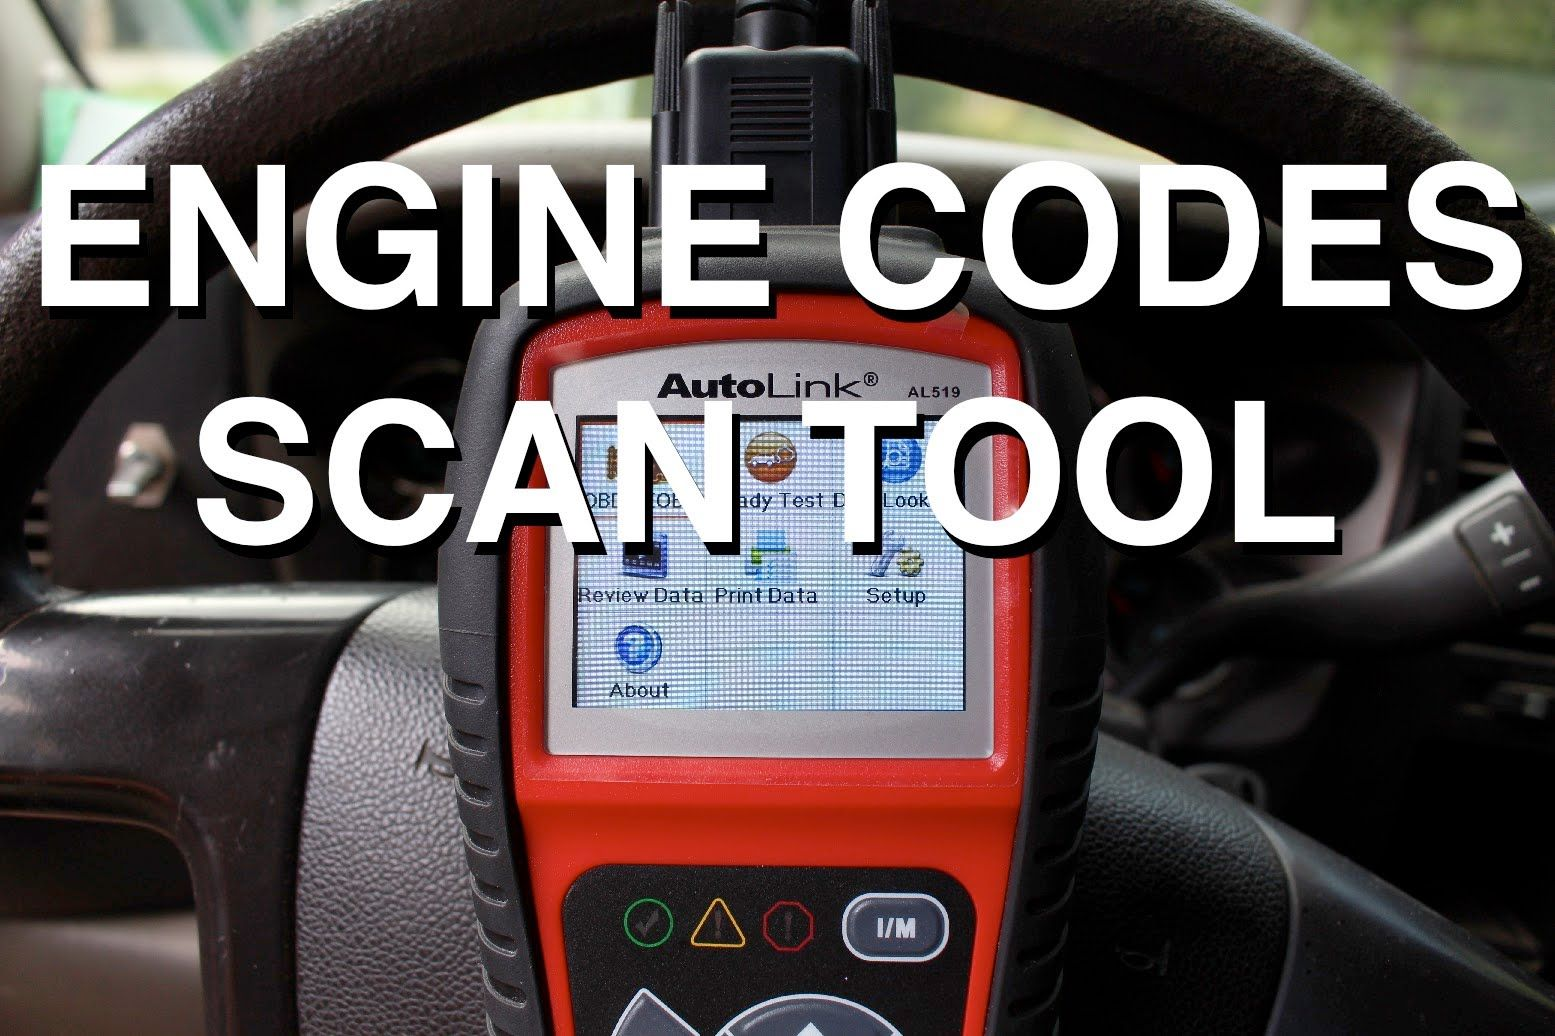 Check Engine Codes with a Scan Tool (With images) Coding